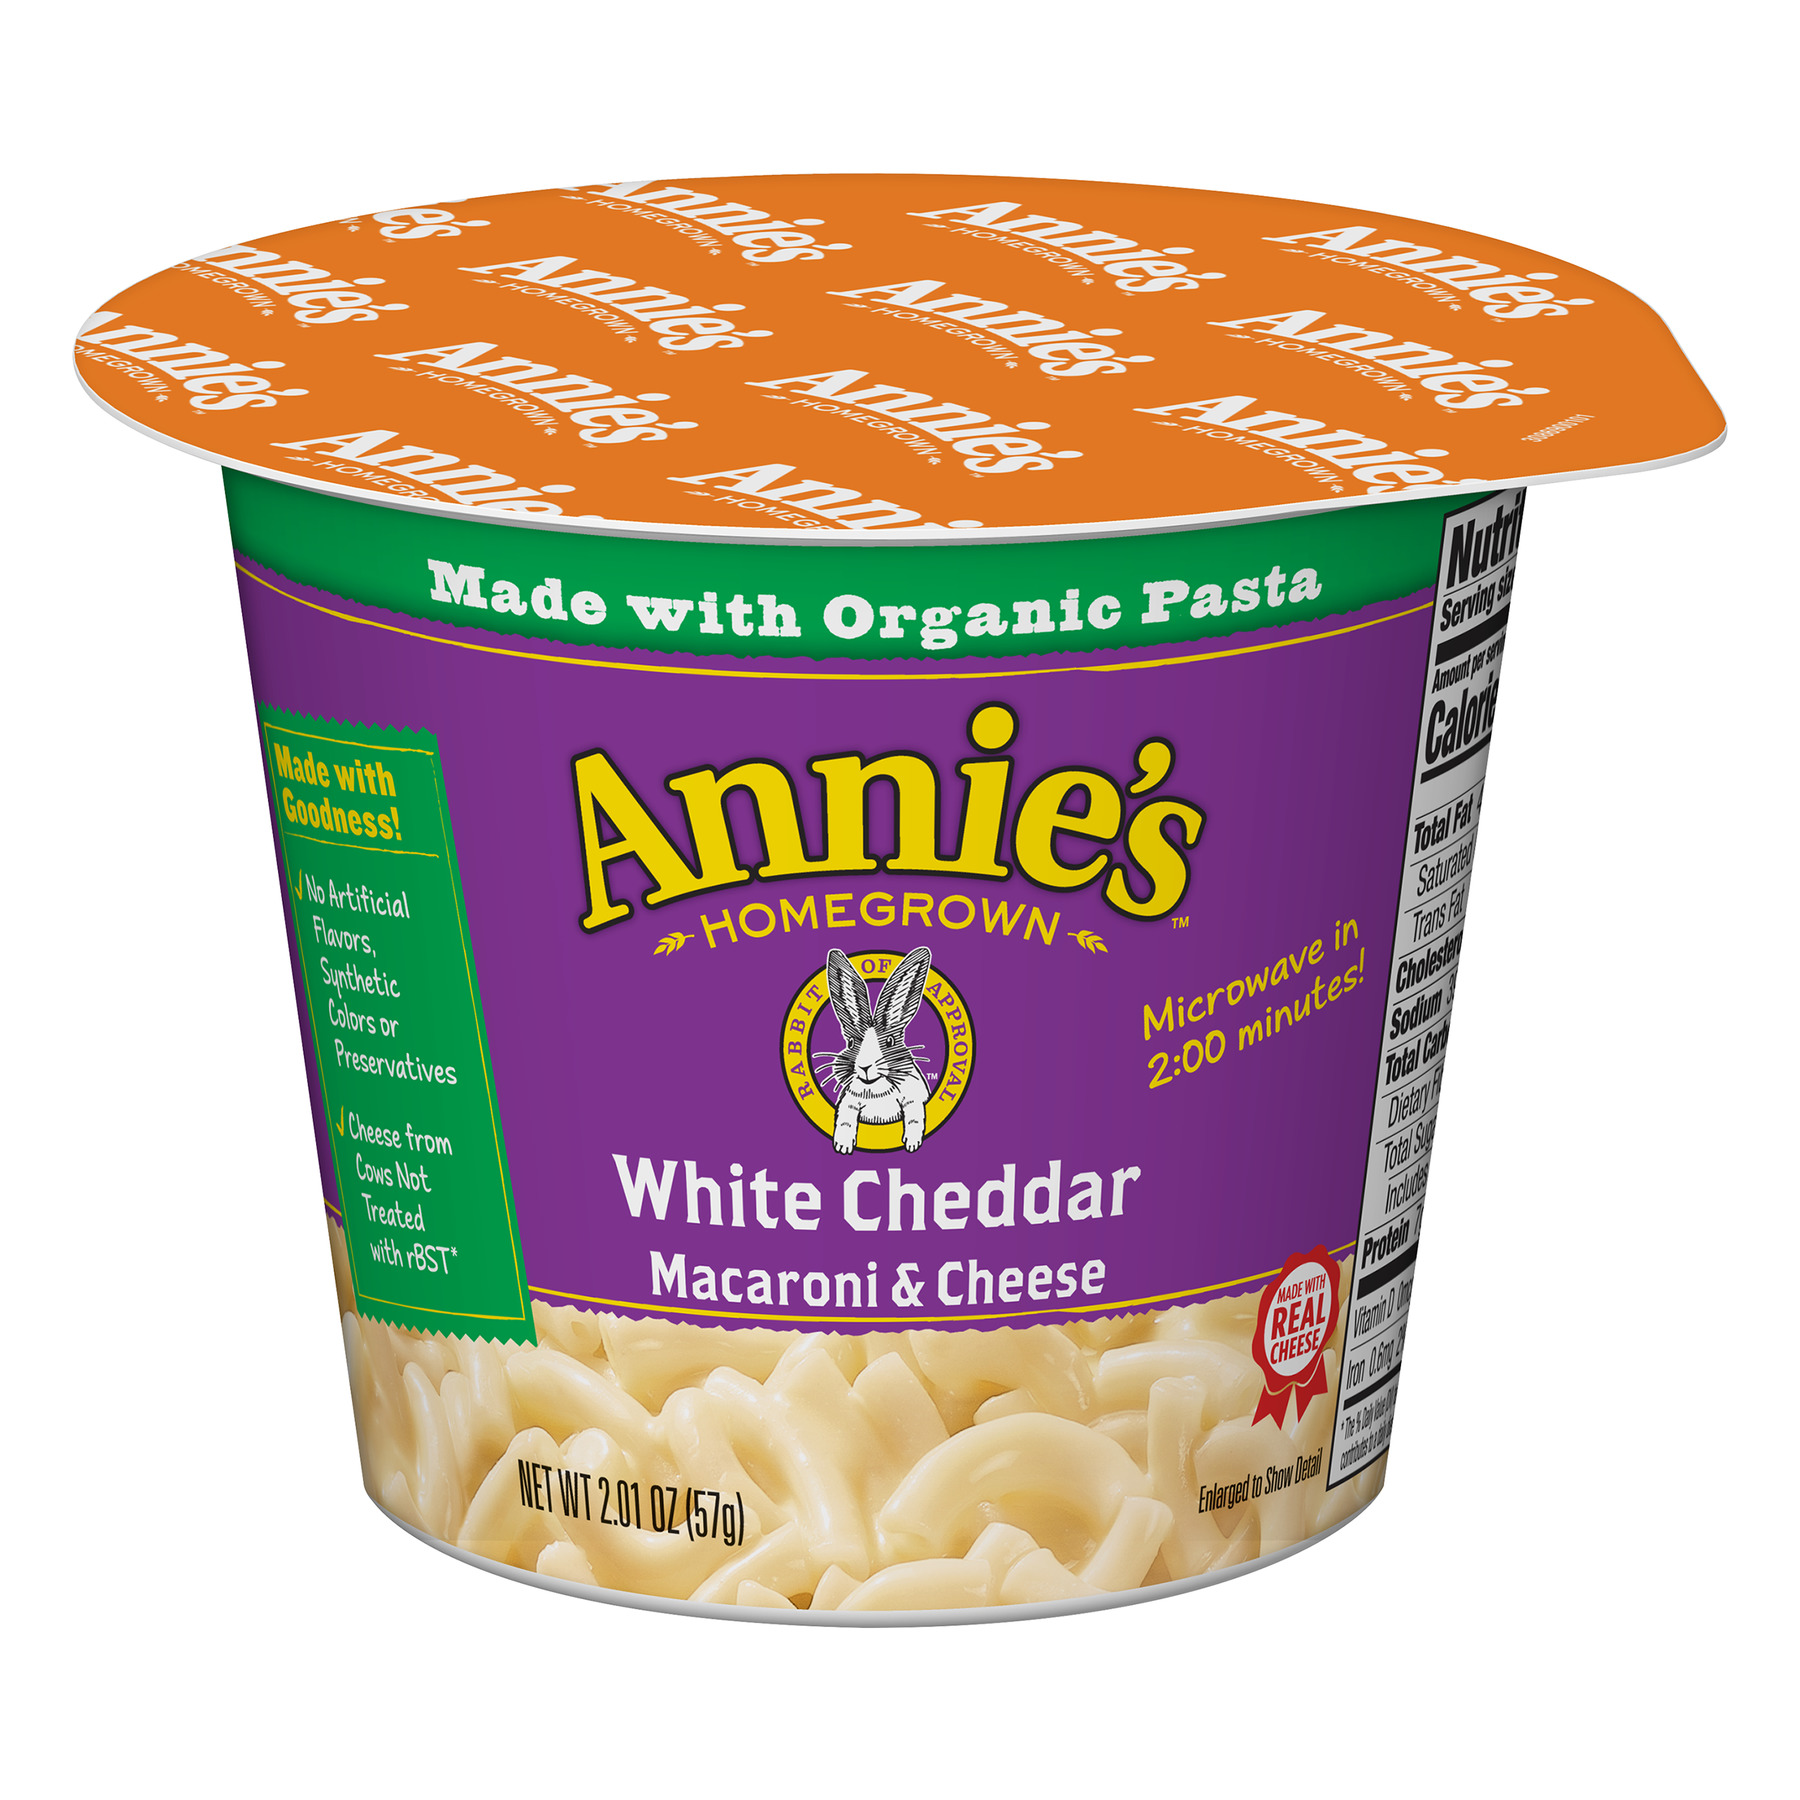 Annie's White Cheddar Macaroni and Cheese Micro Cup, 2.01 oz